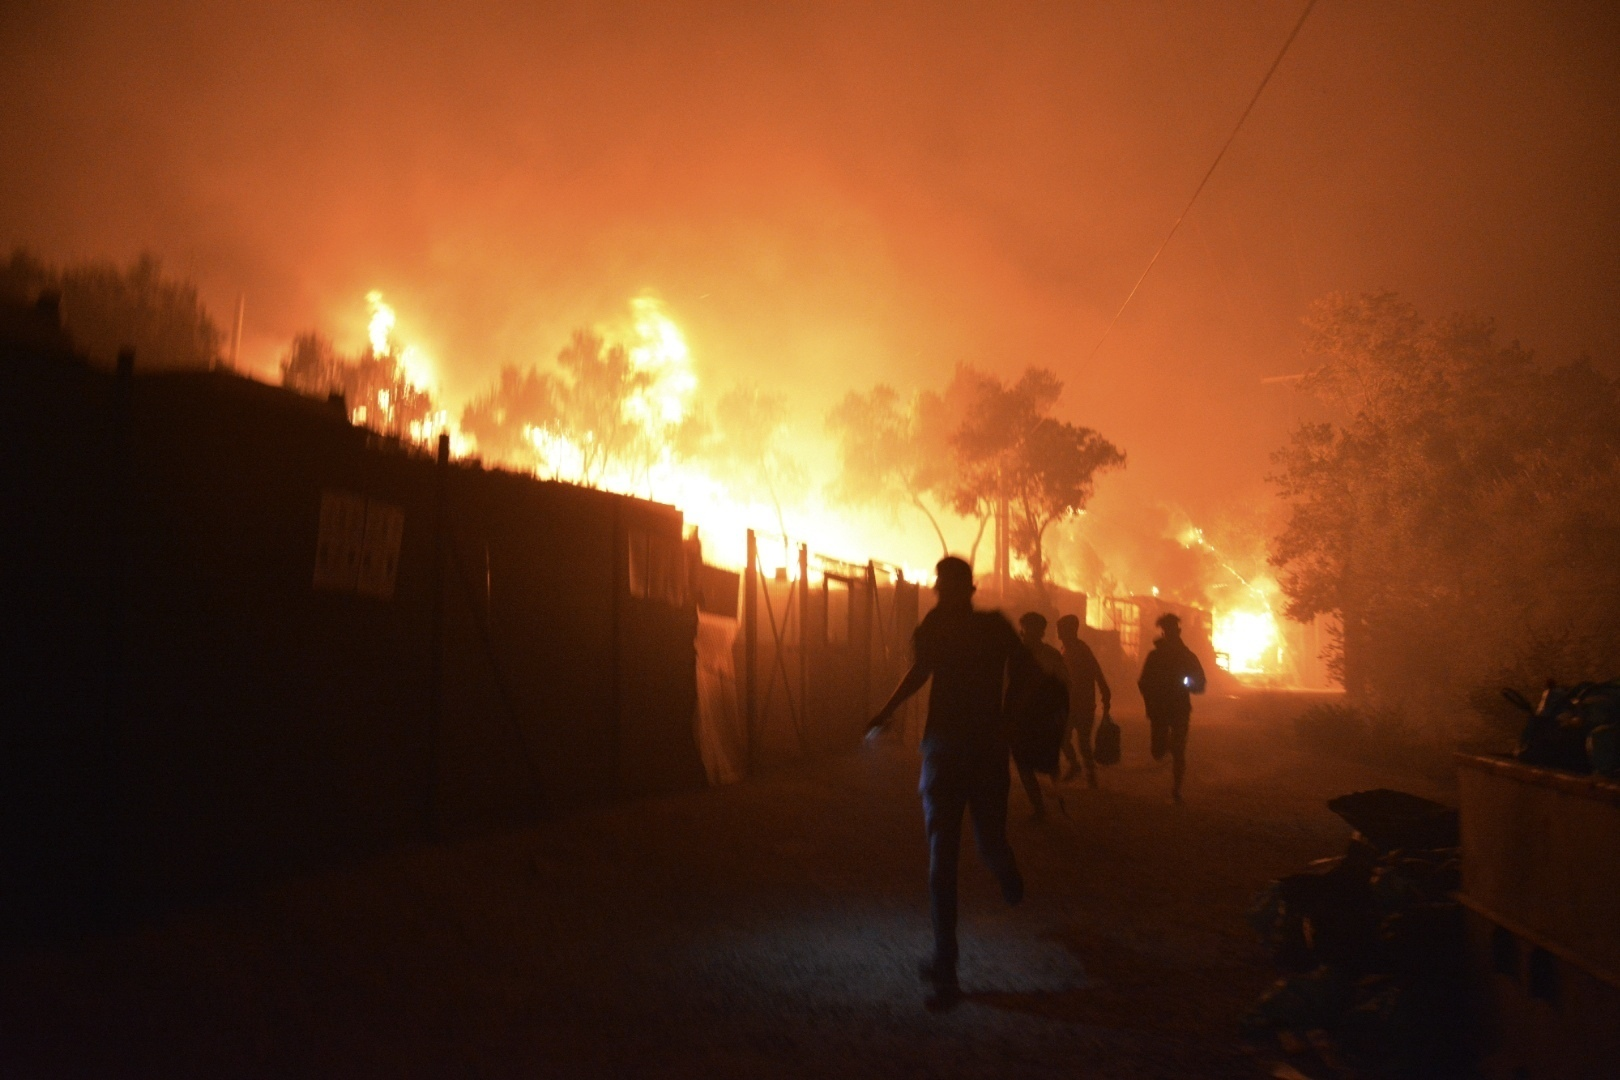 Refugees and migrants run as fire burns in the Moria refugee camp on the northeastern Aegean island of Lesbos, Greece, on Wednesday, Sept. 9, 2020. Fire Service officials say a large refugee camp on the Greek island of Lesbos has been partially evacuated despite a COVID-19 lockdown after fires broke out at multiple points around the site early Wednesday. Photo: AP